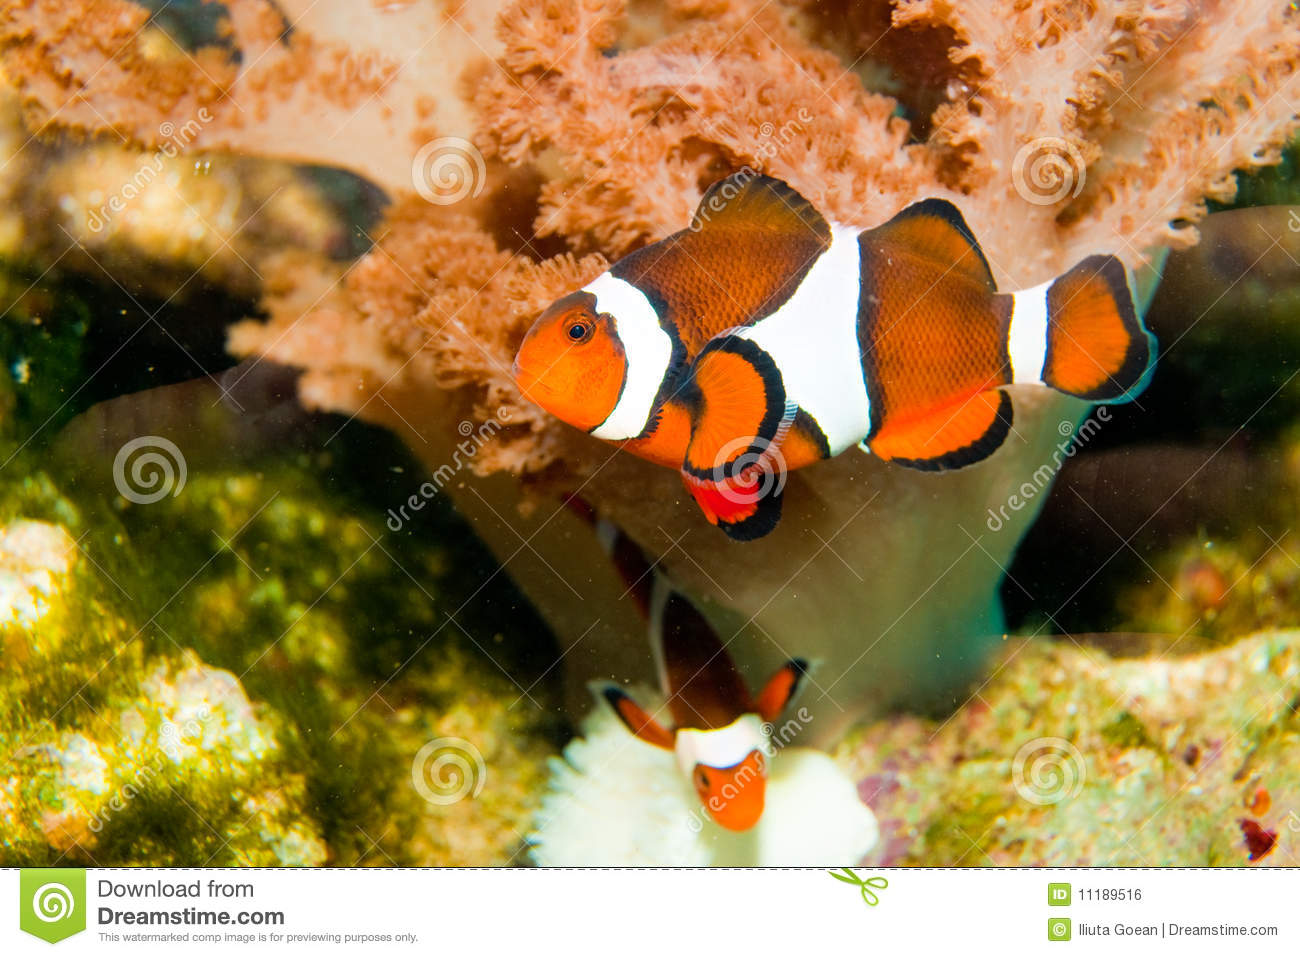 Nemo clown fish royalty free stock image image 11189516 for Clown fish nemo